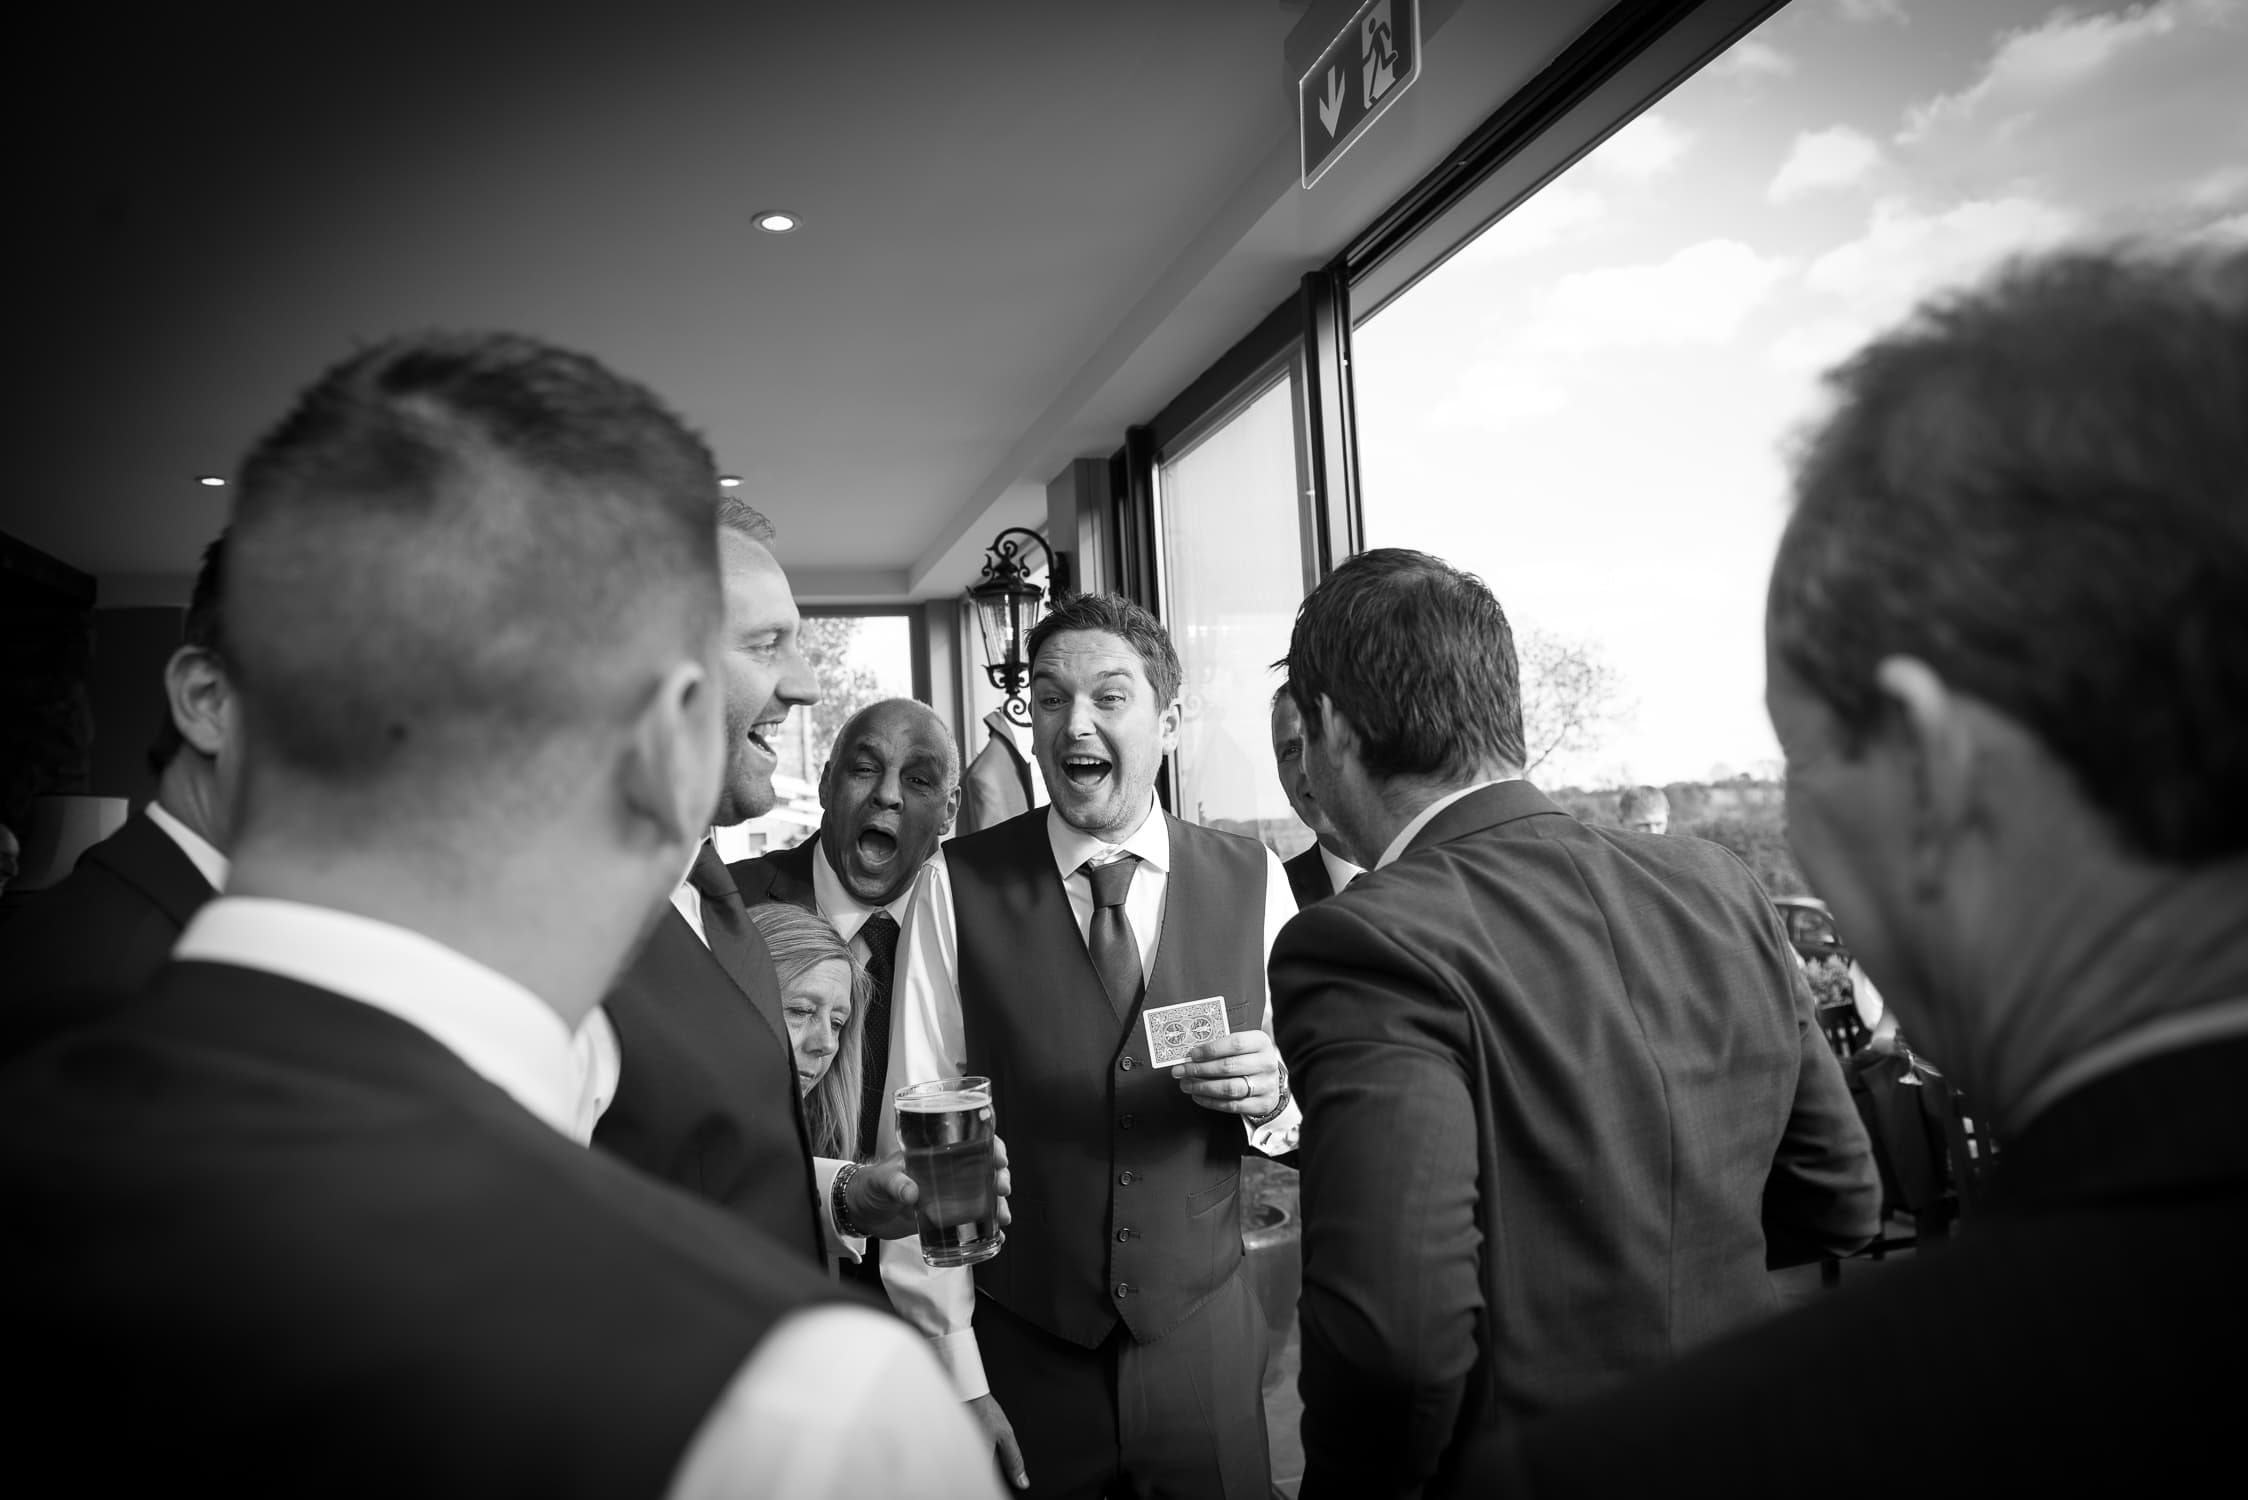 wedding magician, laughter, wedding day